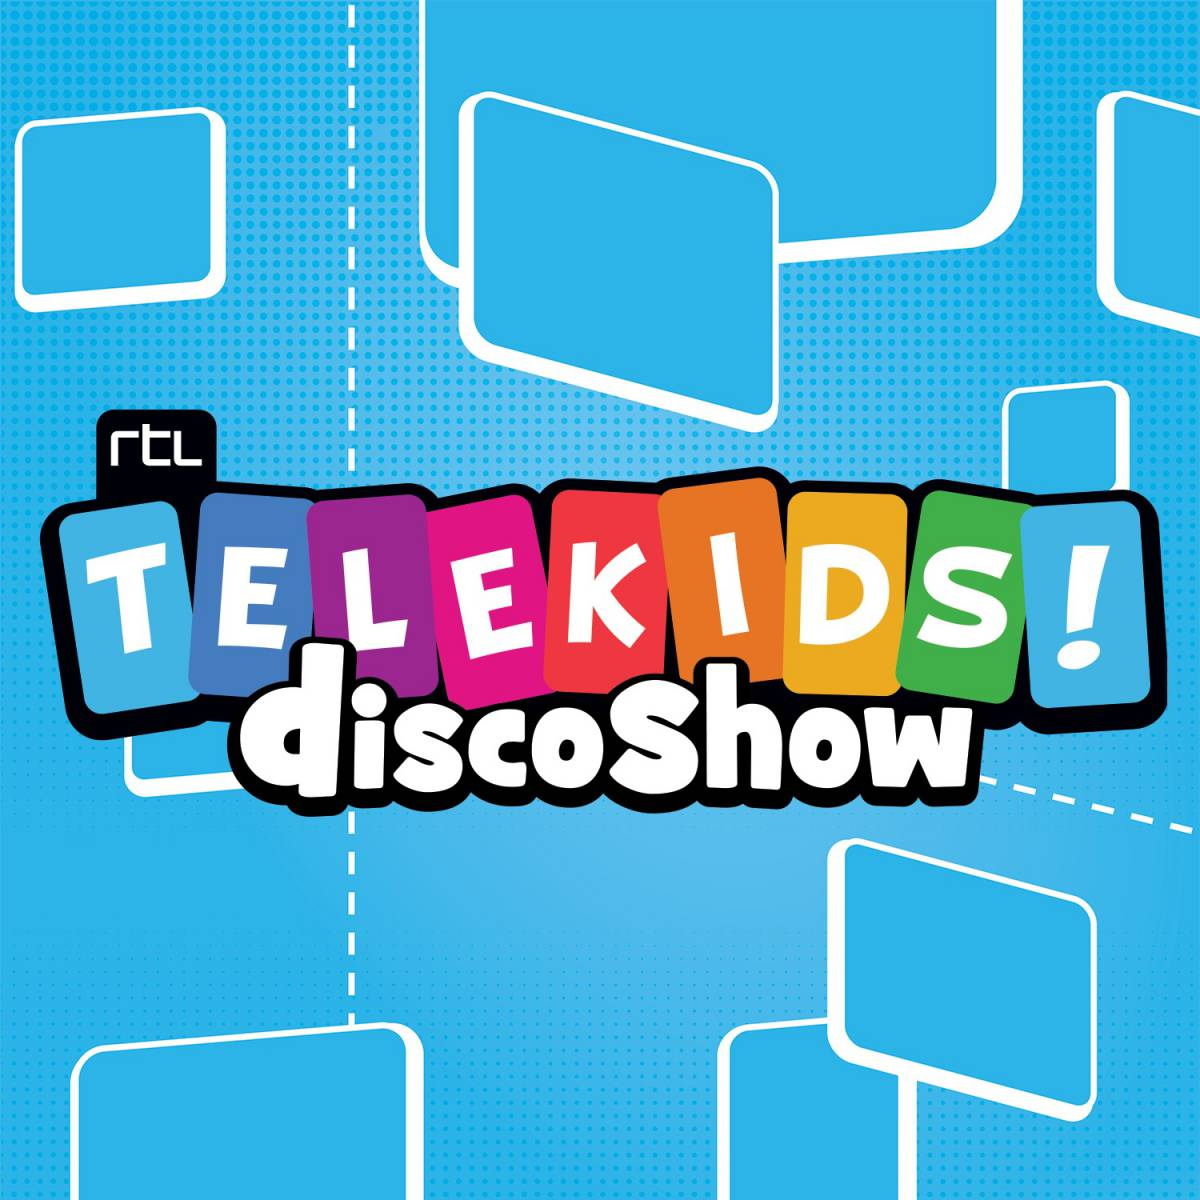 telekids is jarig Telekids Disco Show boeken of inhuren? | JB Productions telekids is jarig